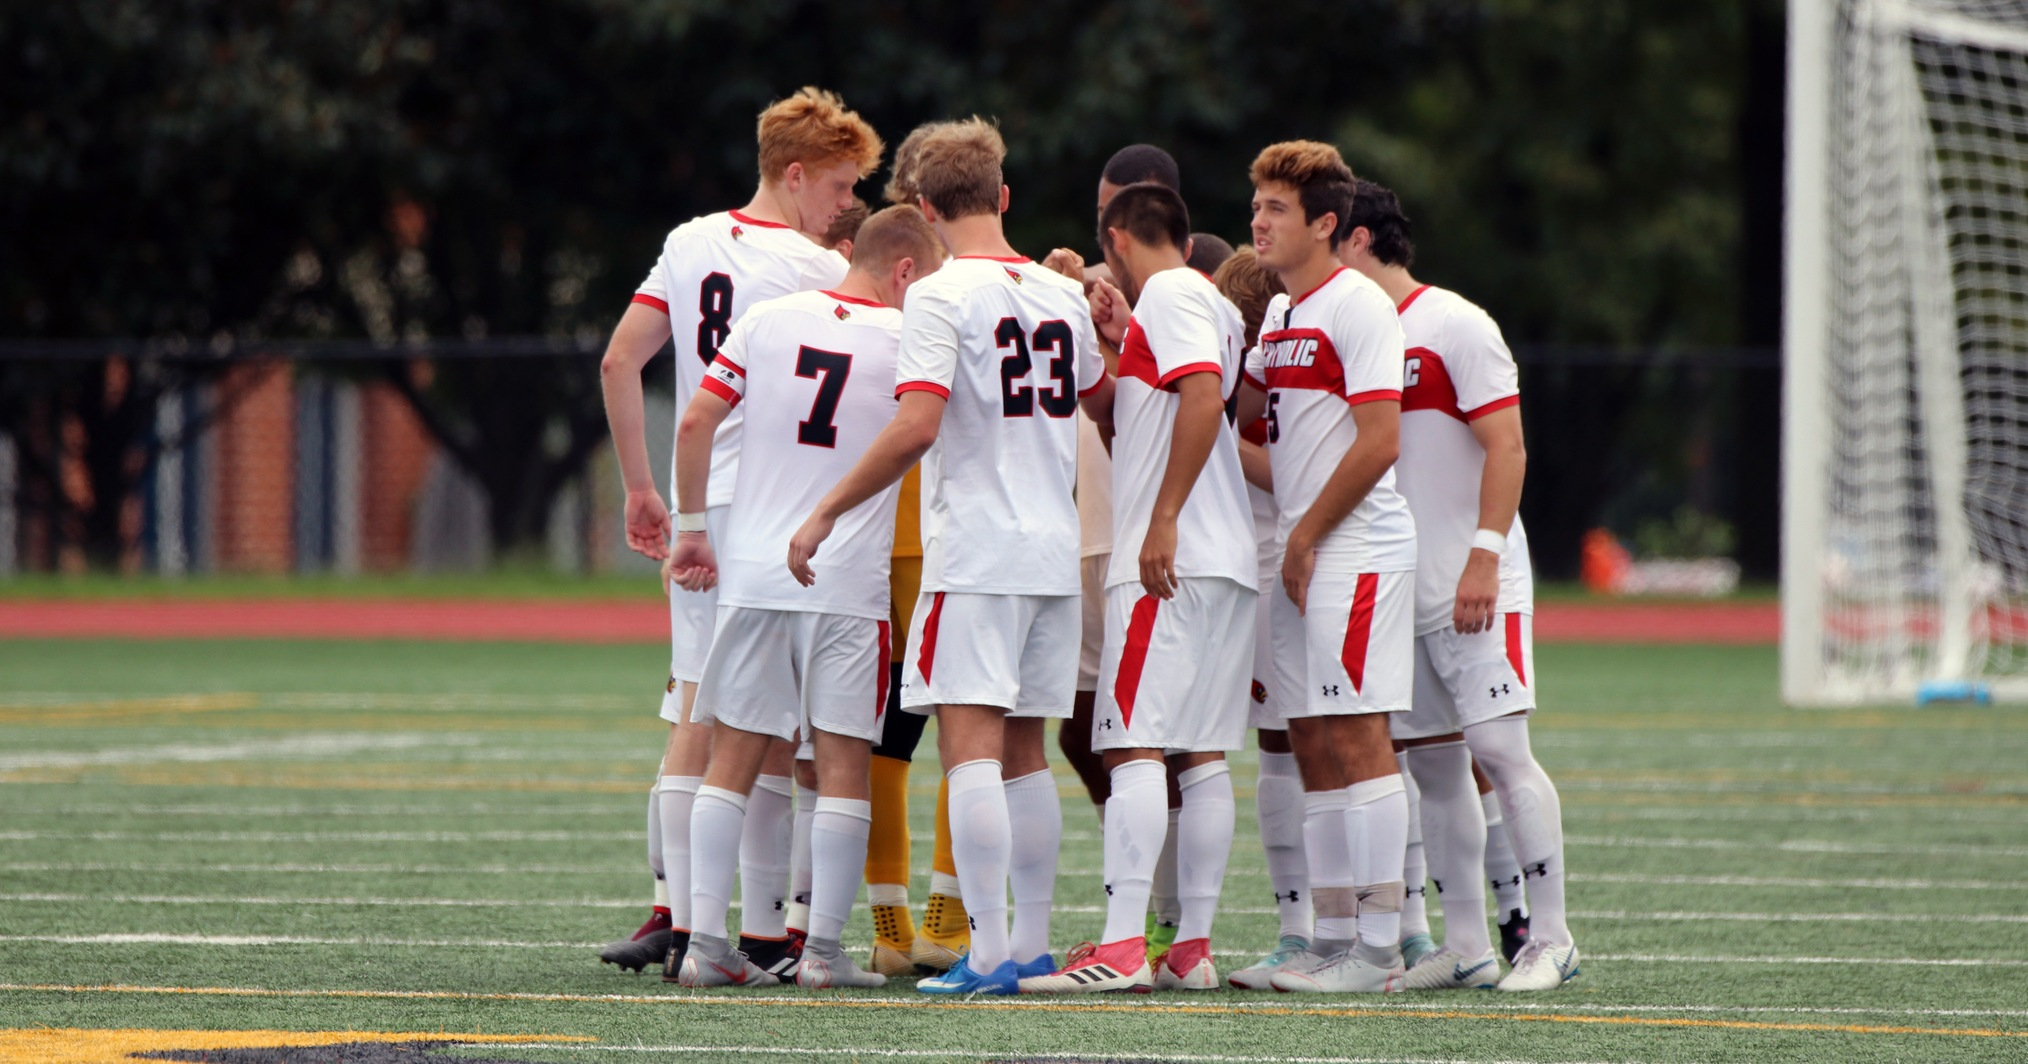 Cardinals Lose 1-0 in Landmark Championship